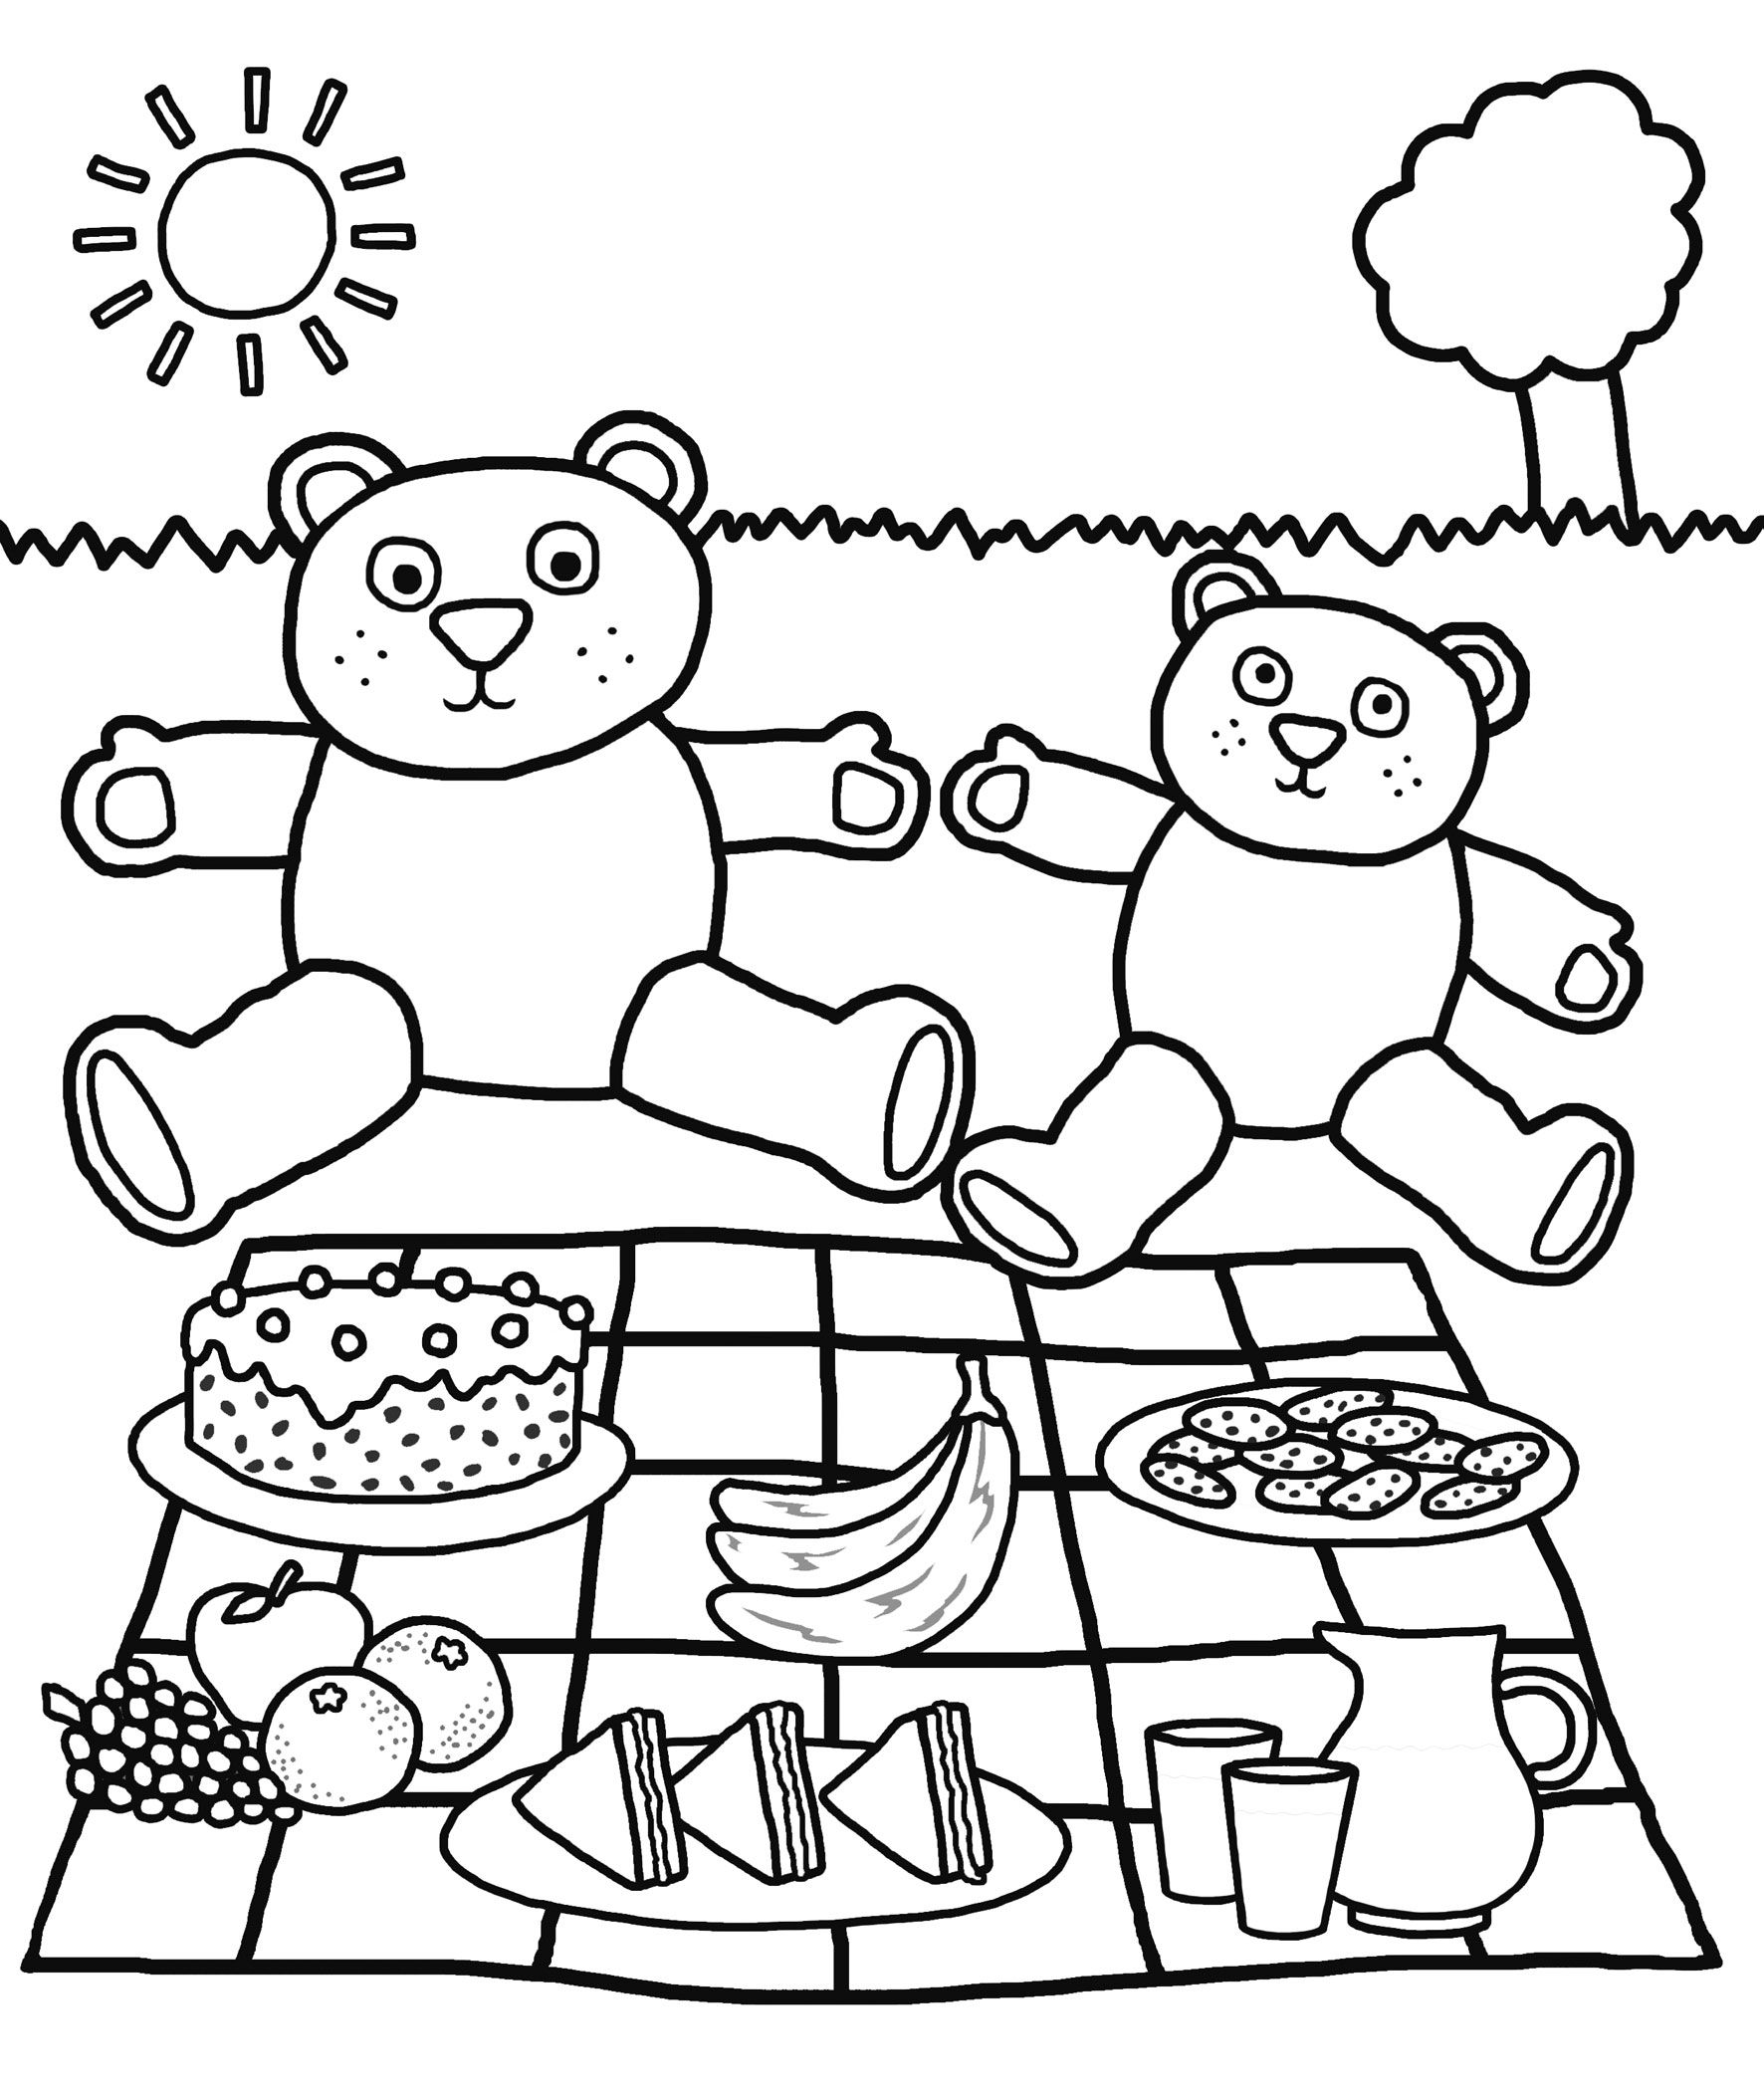 July 10 is National Teddy Bear Picnic Day! Enjoy this fun